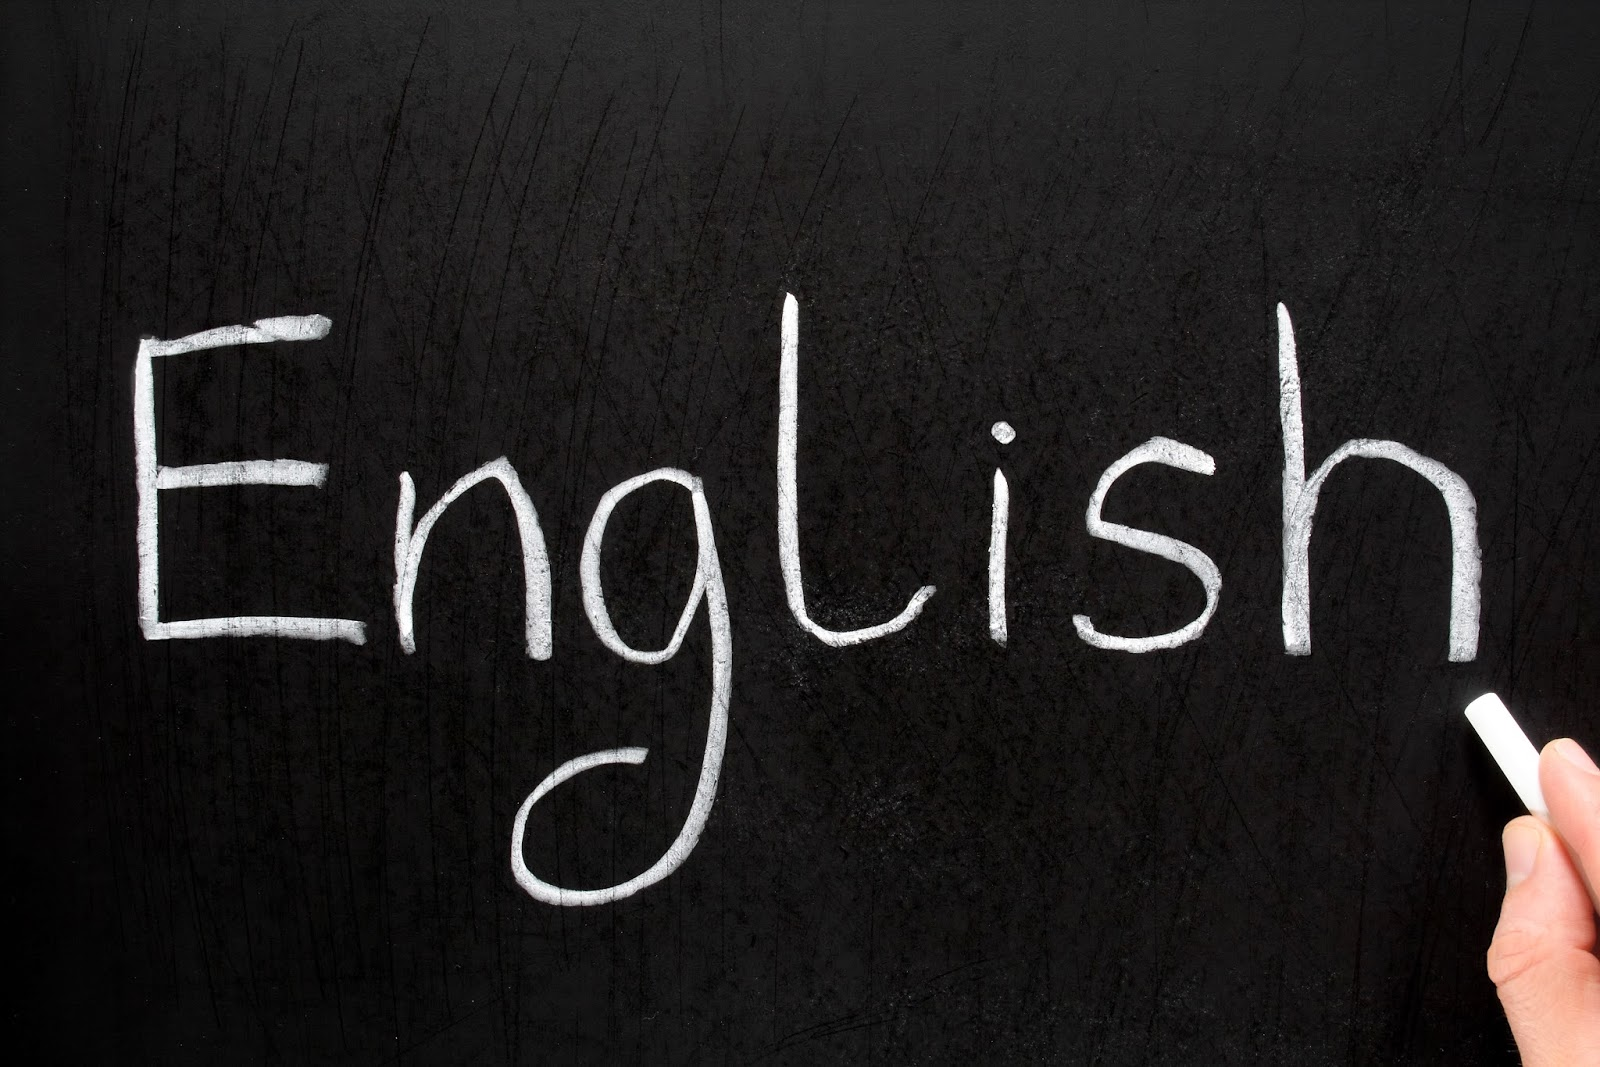 english course reflective In this course i had to face one of my biggest fears, writing i have never been very good at writing, but i do think this course helped me out a lot.